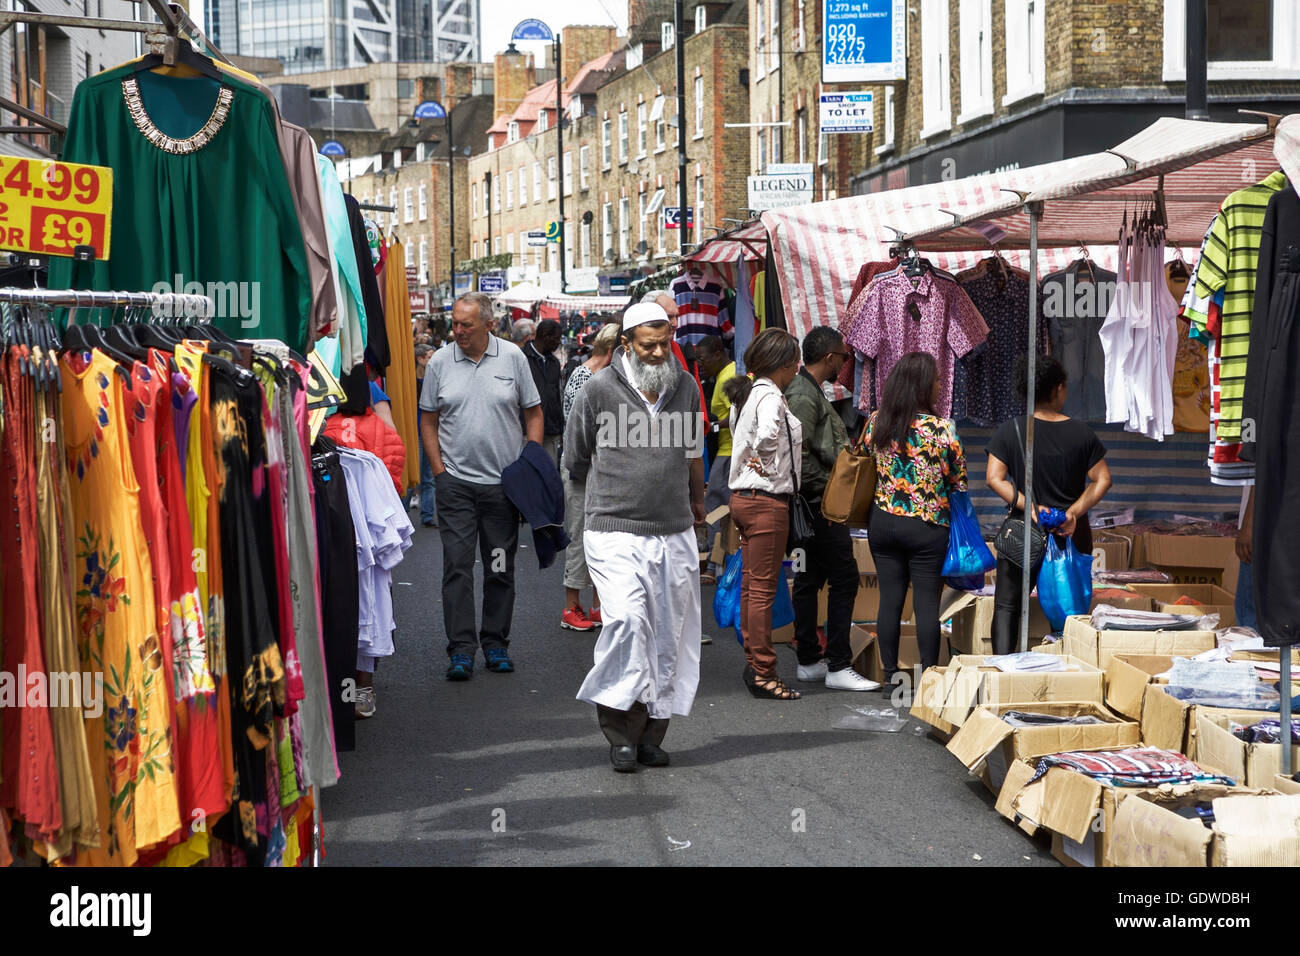 Image result for london street market